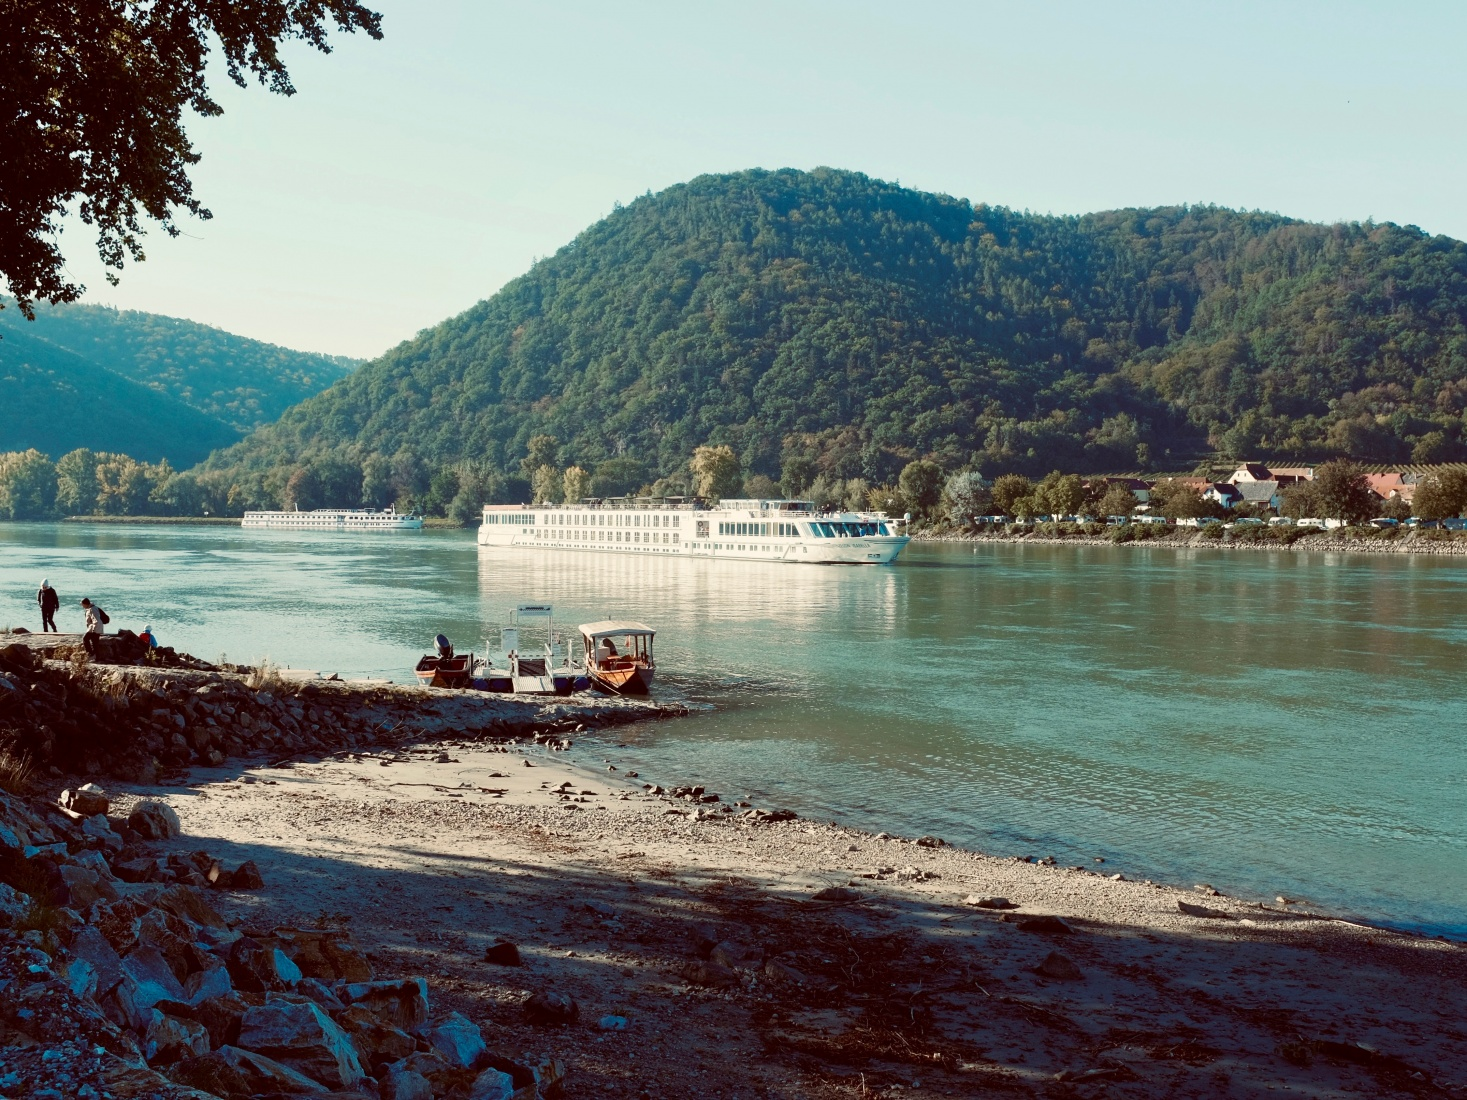 A view of the Danube and a ship from the bike ride in the Wachau Valley of Austria.